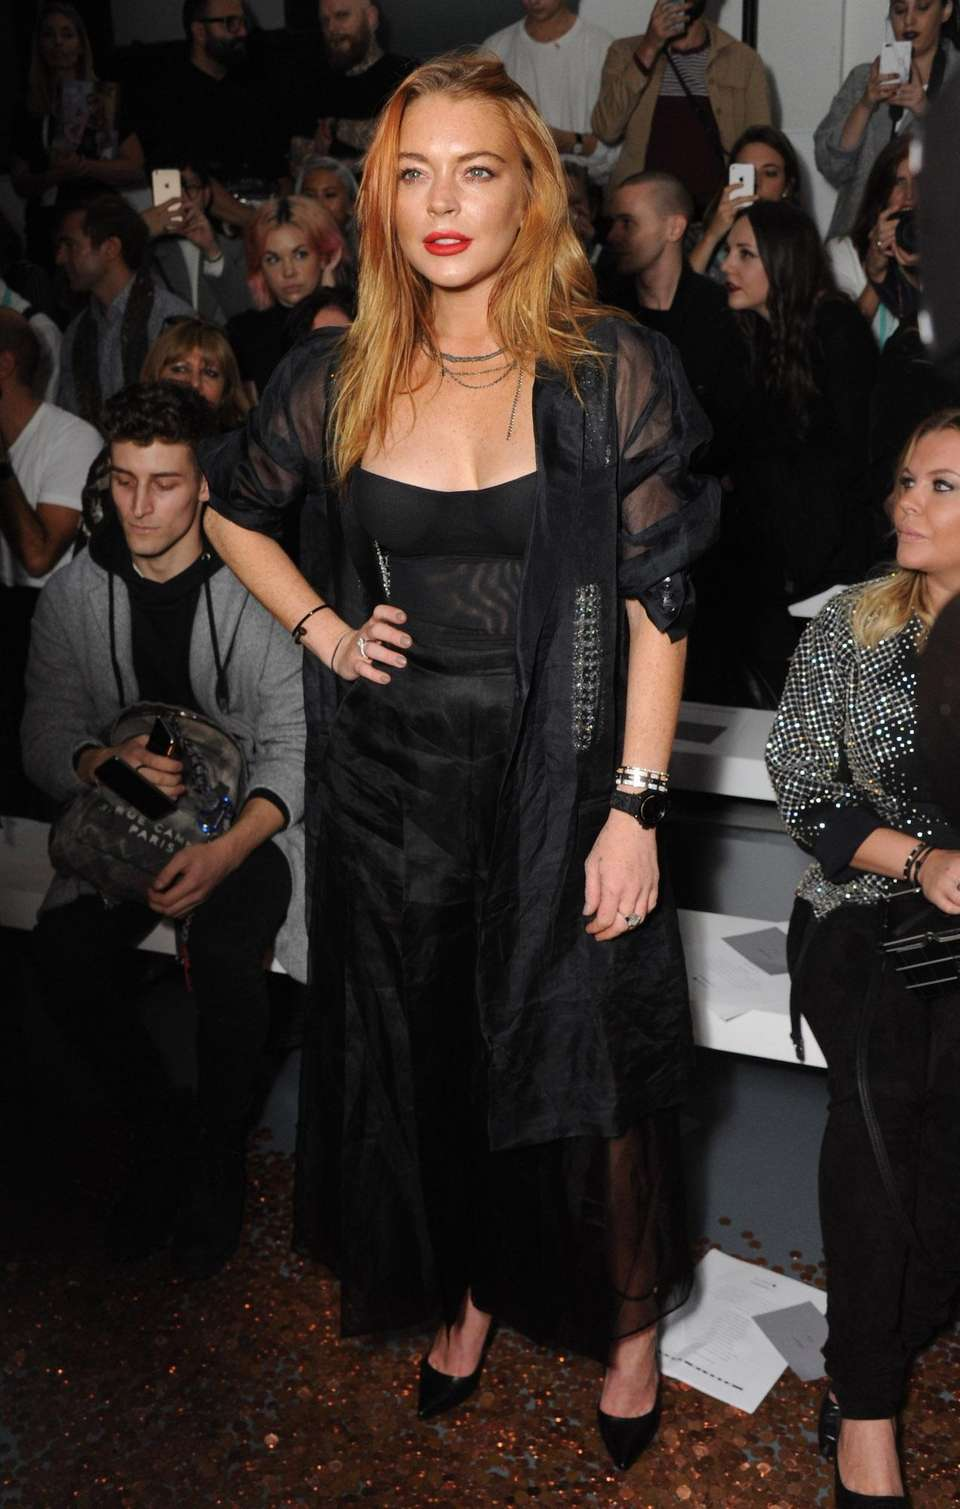 Lindsay Lohan attends the Gareth Pugh show on